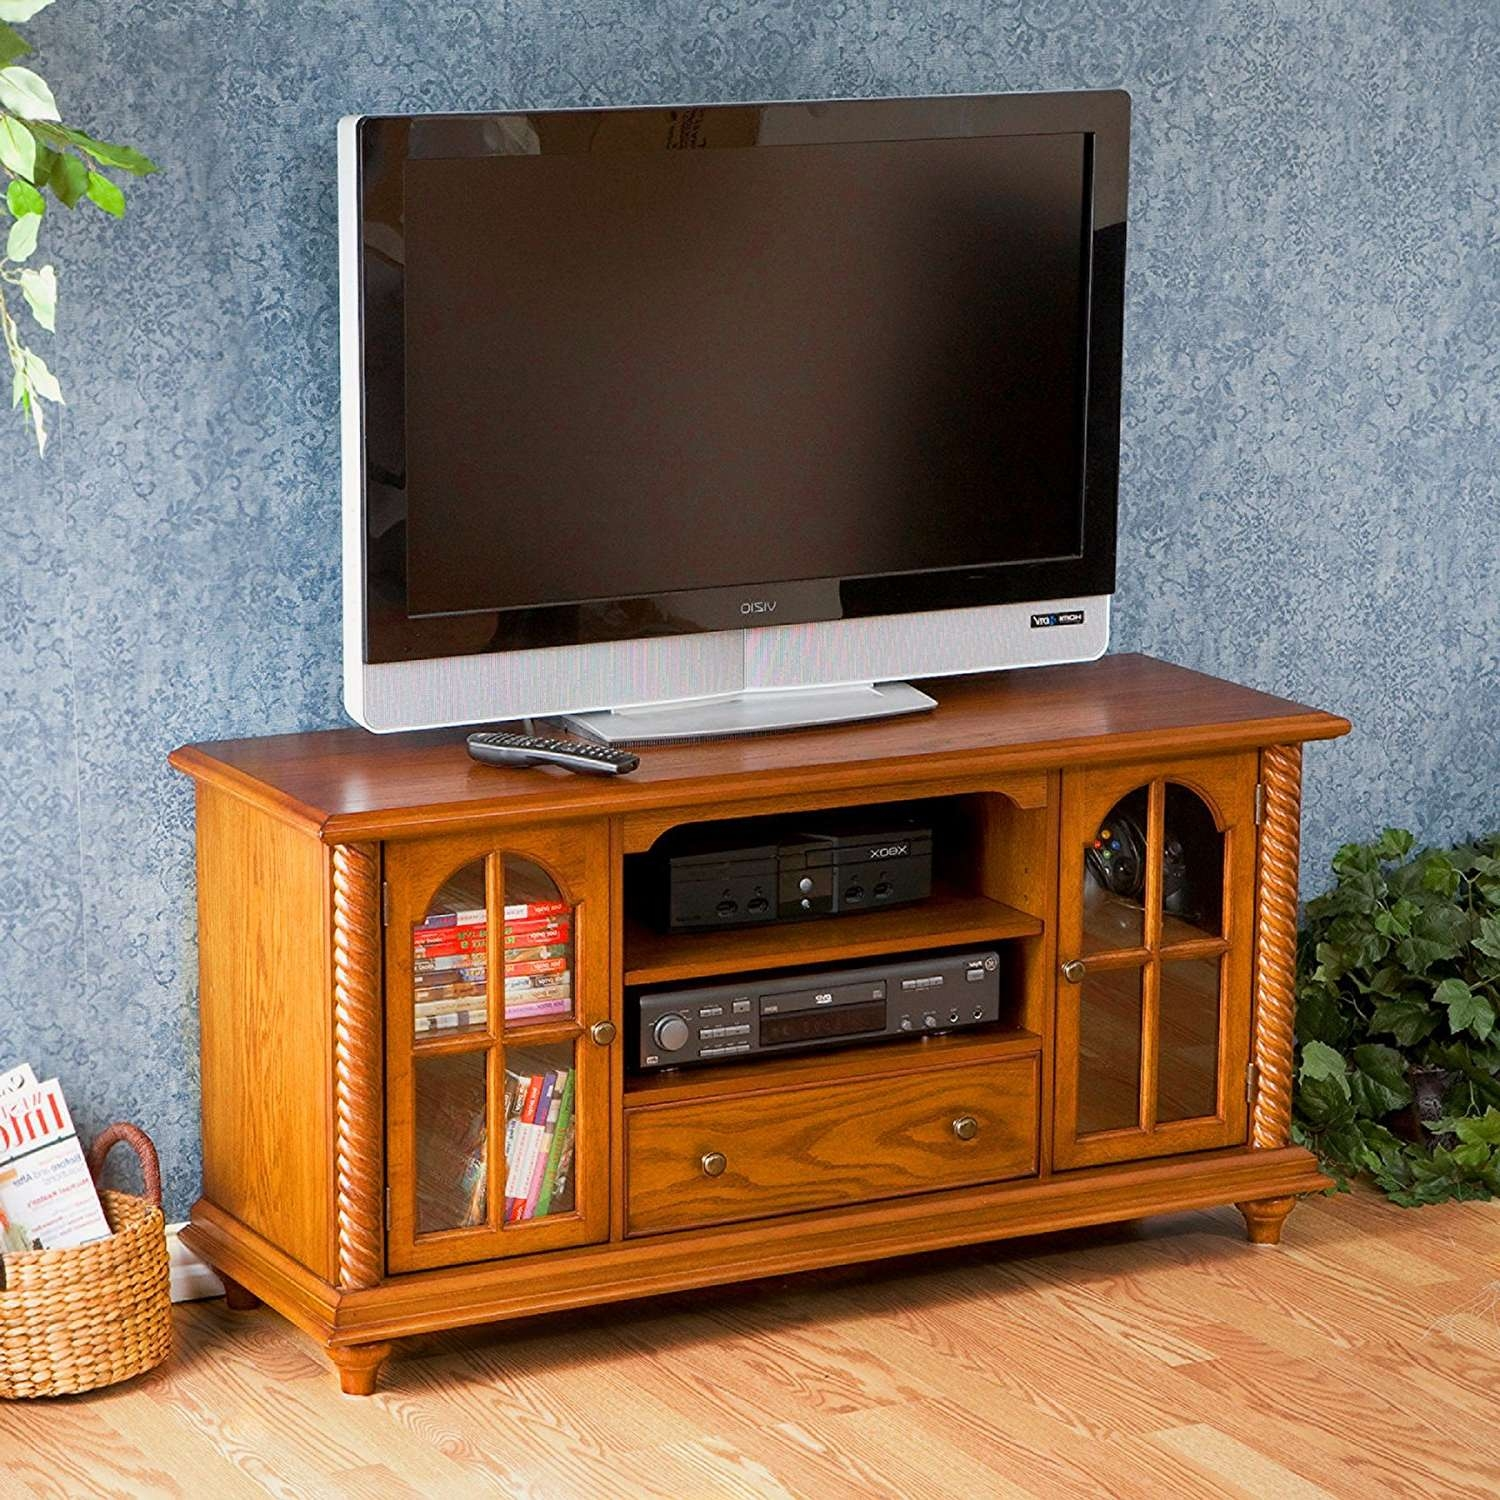 Innovative Designs Oak Tv Console | Marku Home Design Intended For Oak Tv Stands For Flat Screen (View 7 of 15)